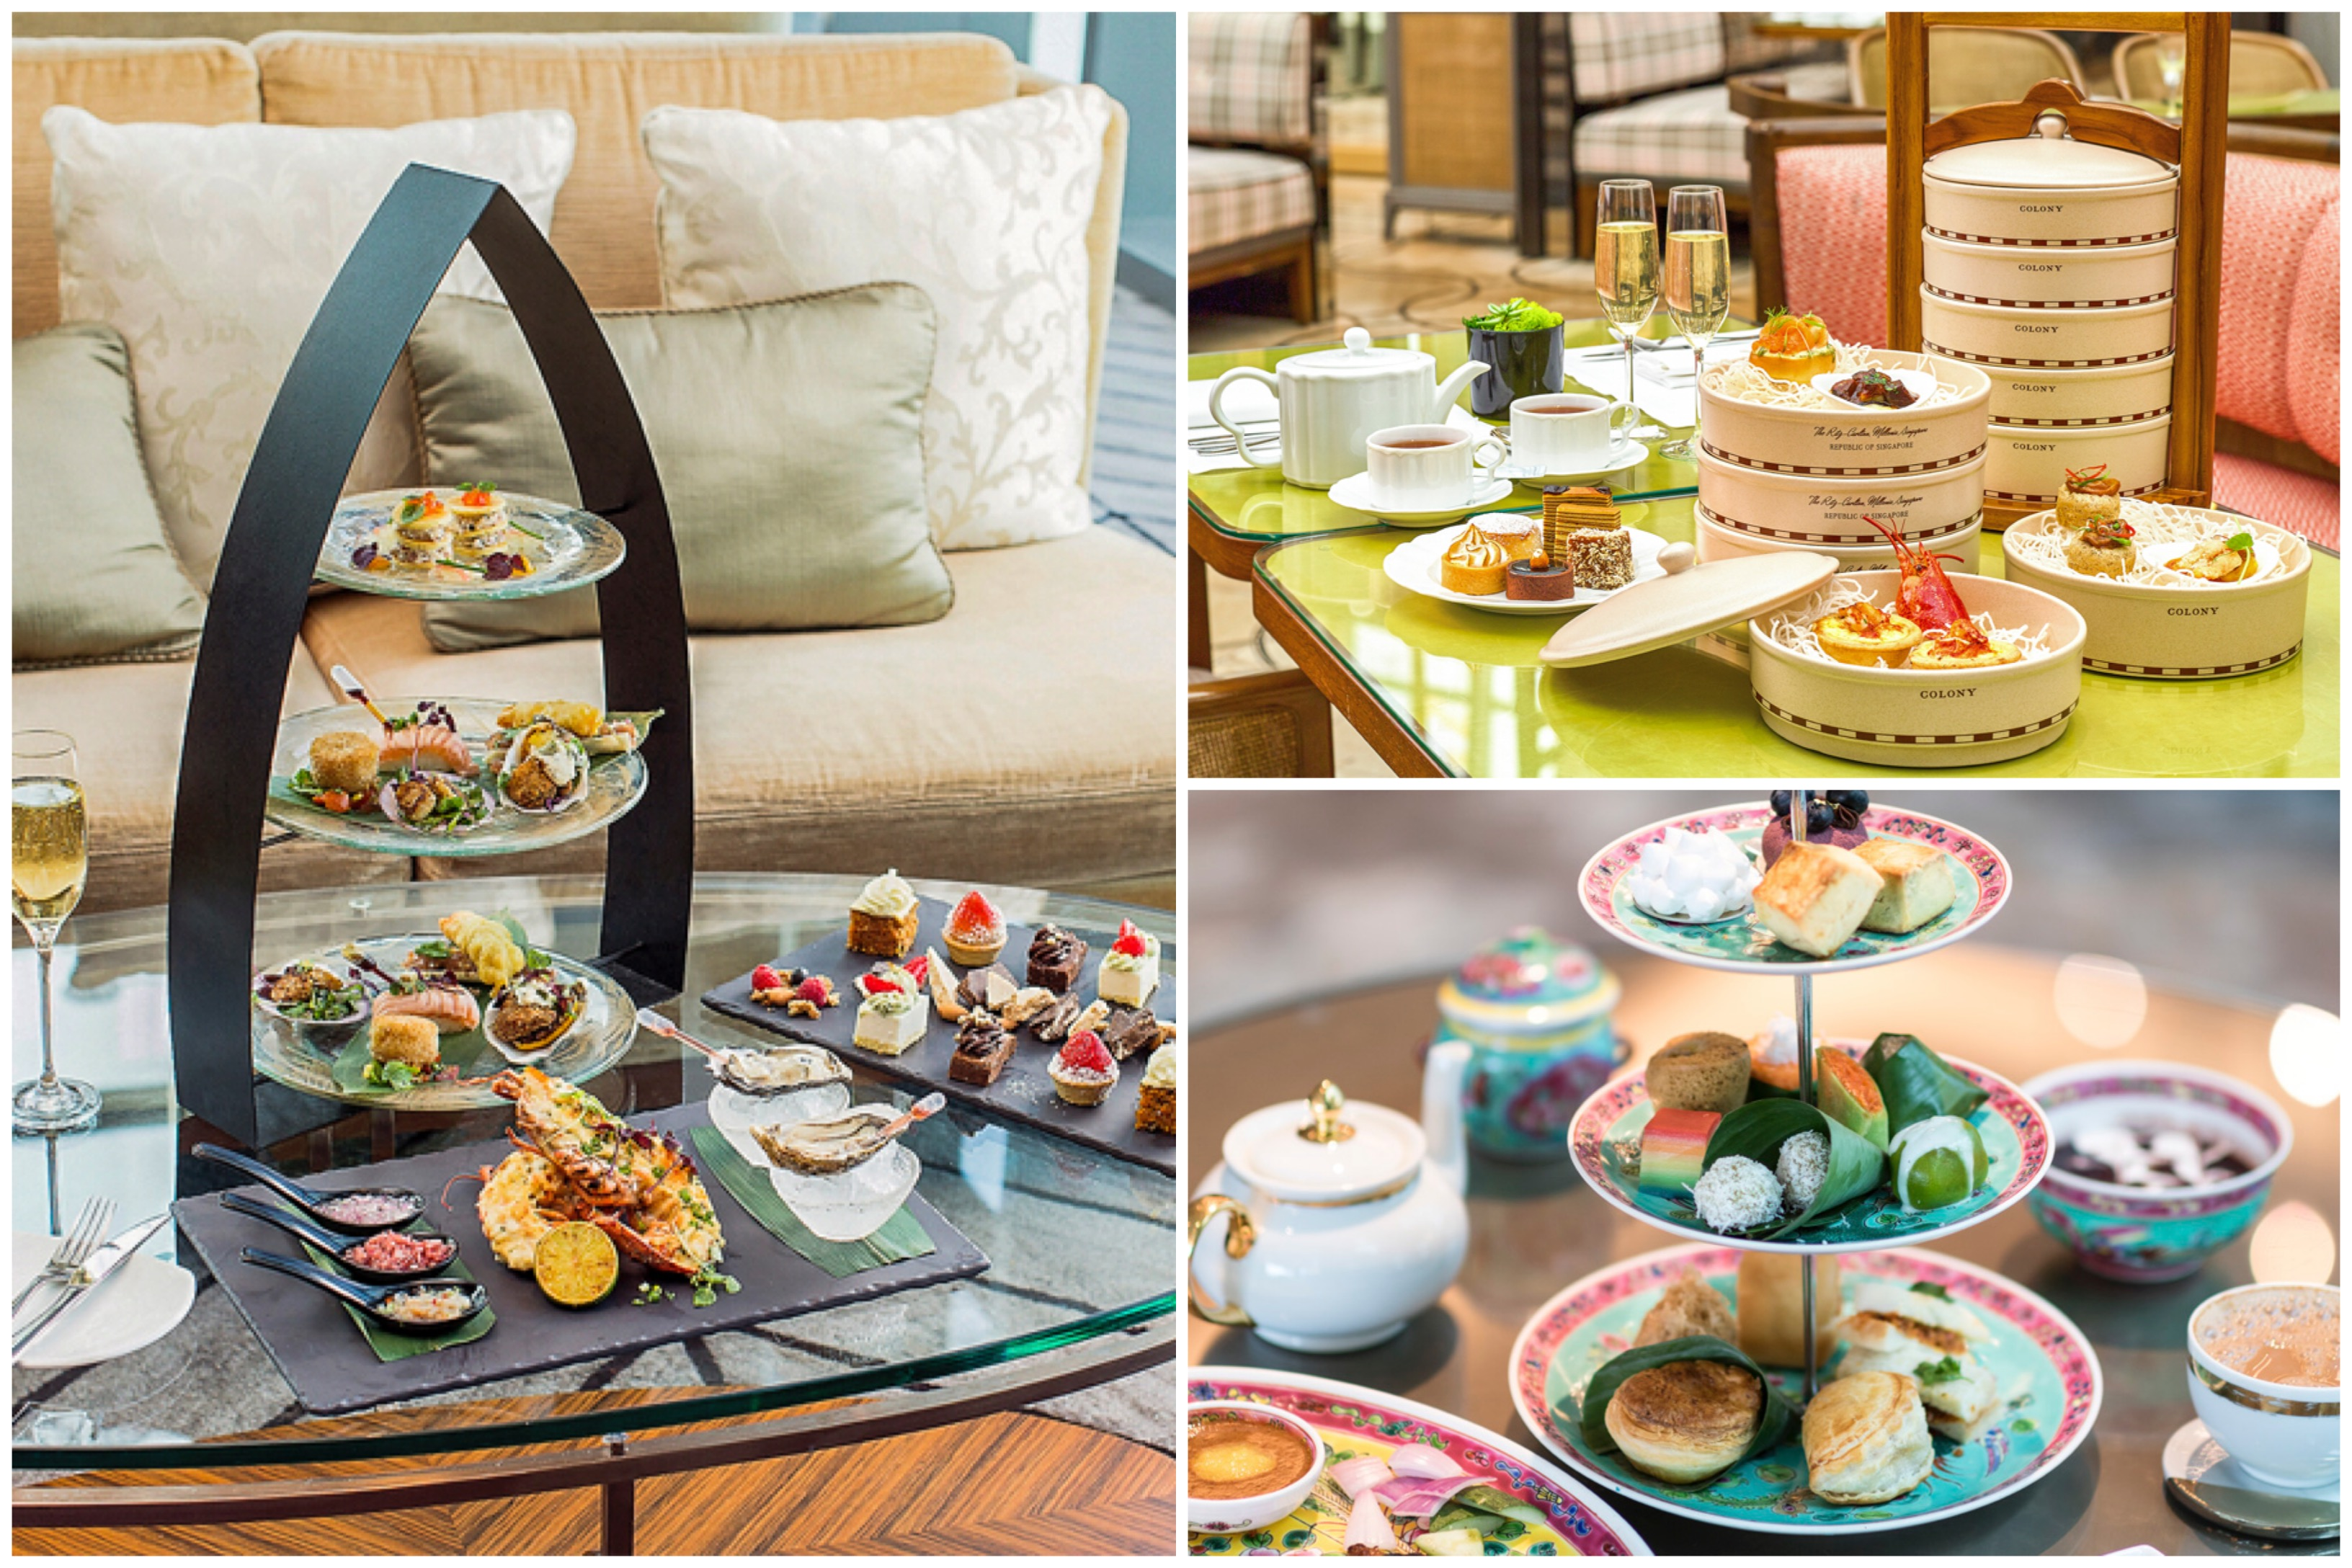 11 Best High Tea Places In Singapore, Some With 1-For-1 Offers To Sweeten The Deal